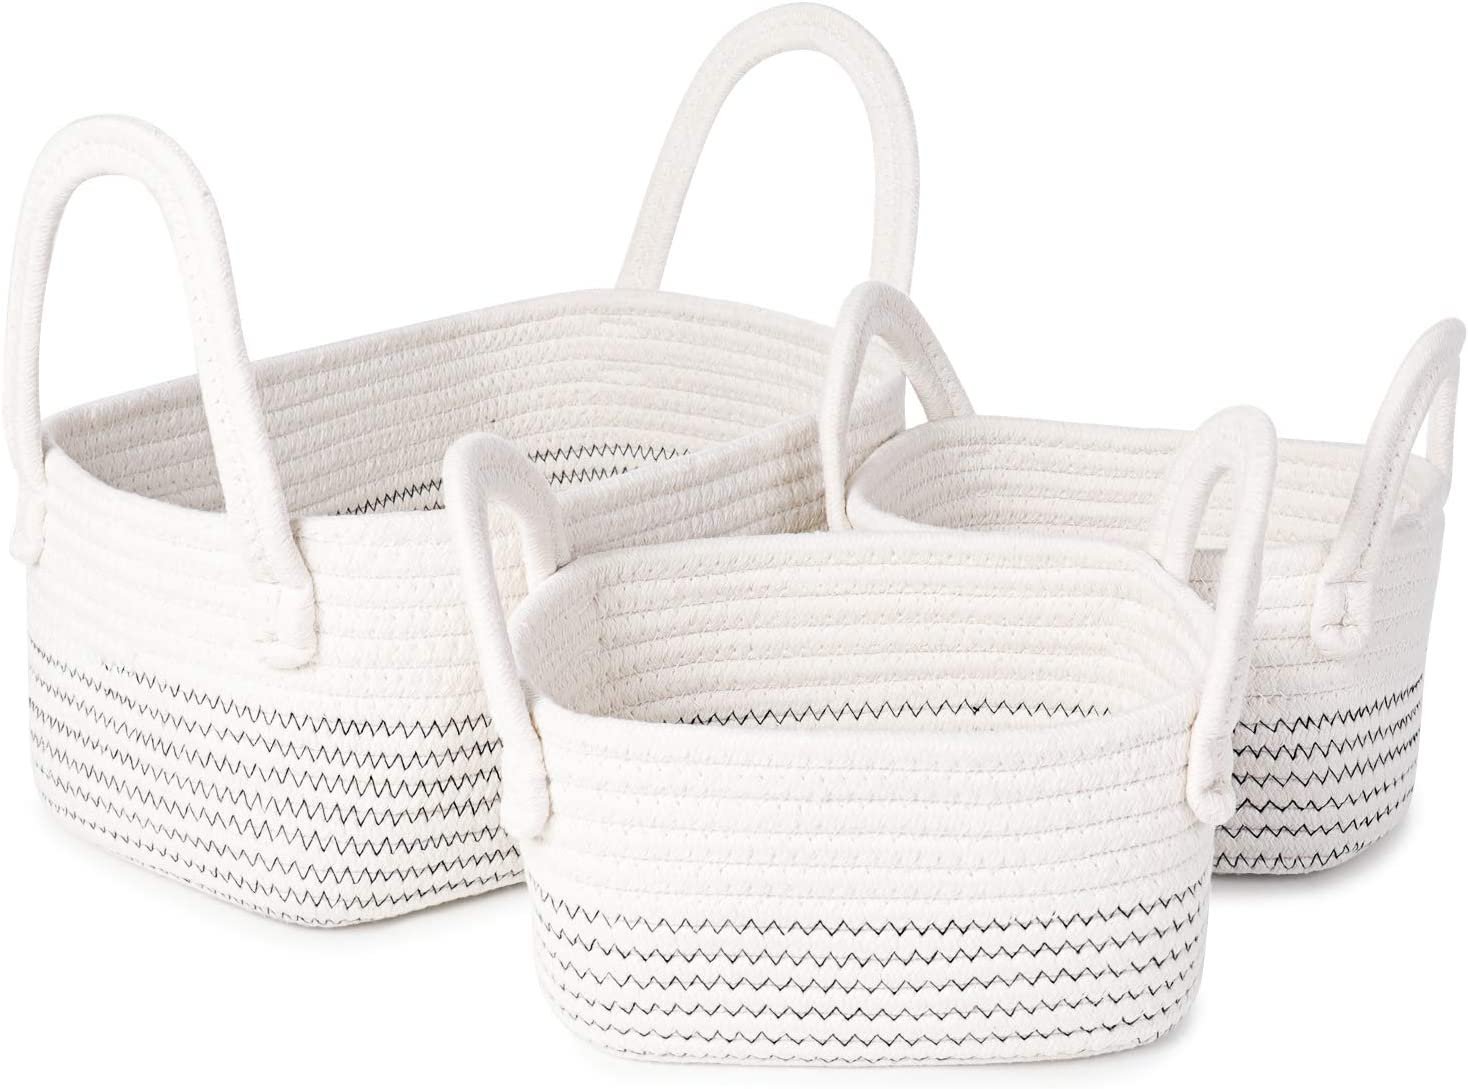 ANMINY 3PCS Woven Cotton Rope Storage Baskets with Handles Large Small Washable Basket Set Decorative Desktop Organizer Storage Bins Boxes Nursery Baby Kid Toy Blanket Clothes Laundry Containers